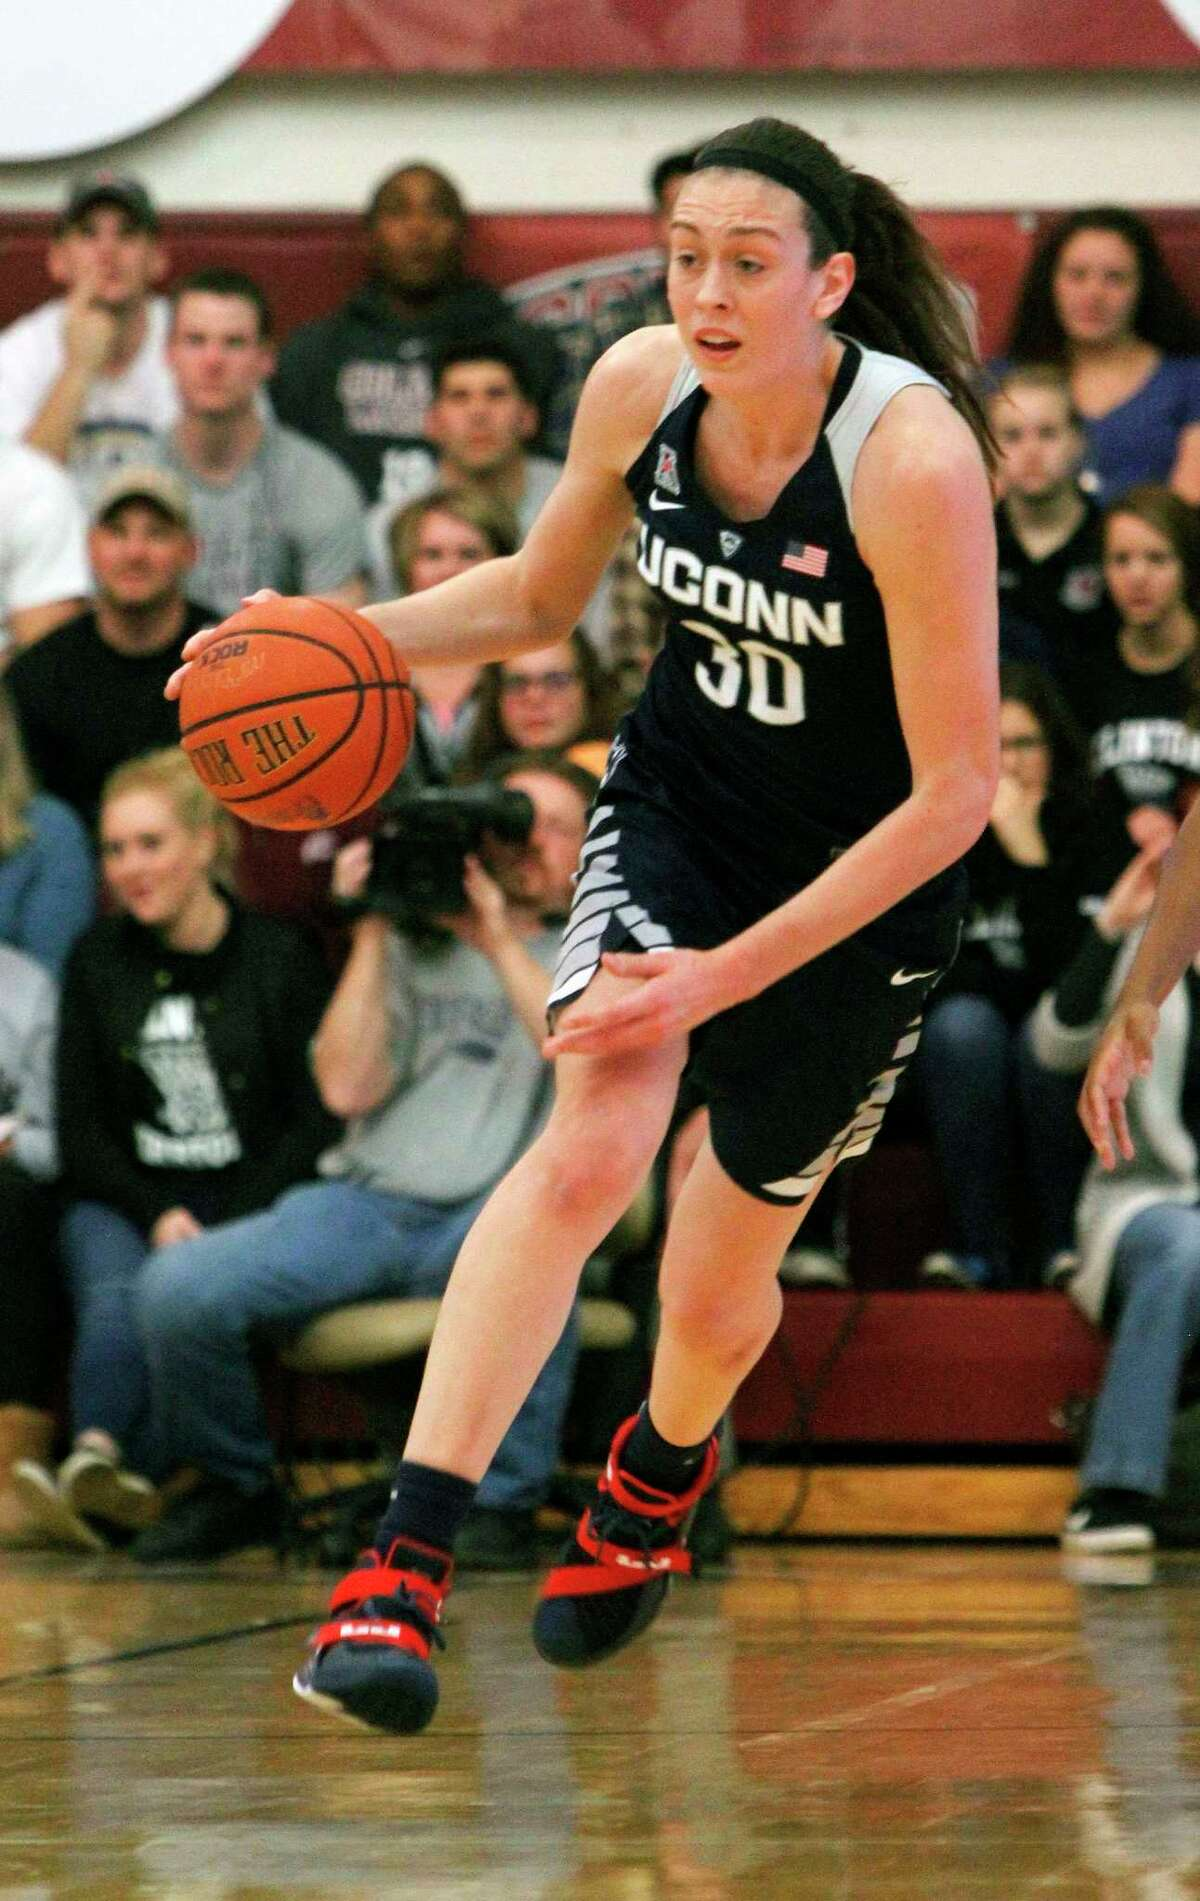 Connecticut's Breanna Stewart dribbles the ball down court in the first quarter of an NCAA college basketball game against Colgate in Hamilton, N.Y., Wednesday, Dec. 9, 2015. (AP Photo/Nick Lisi)